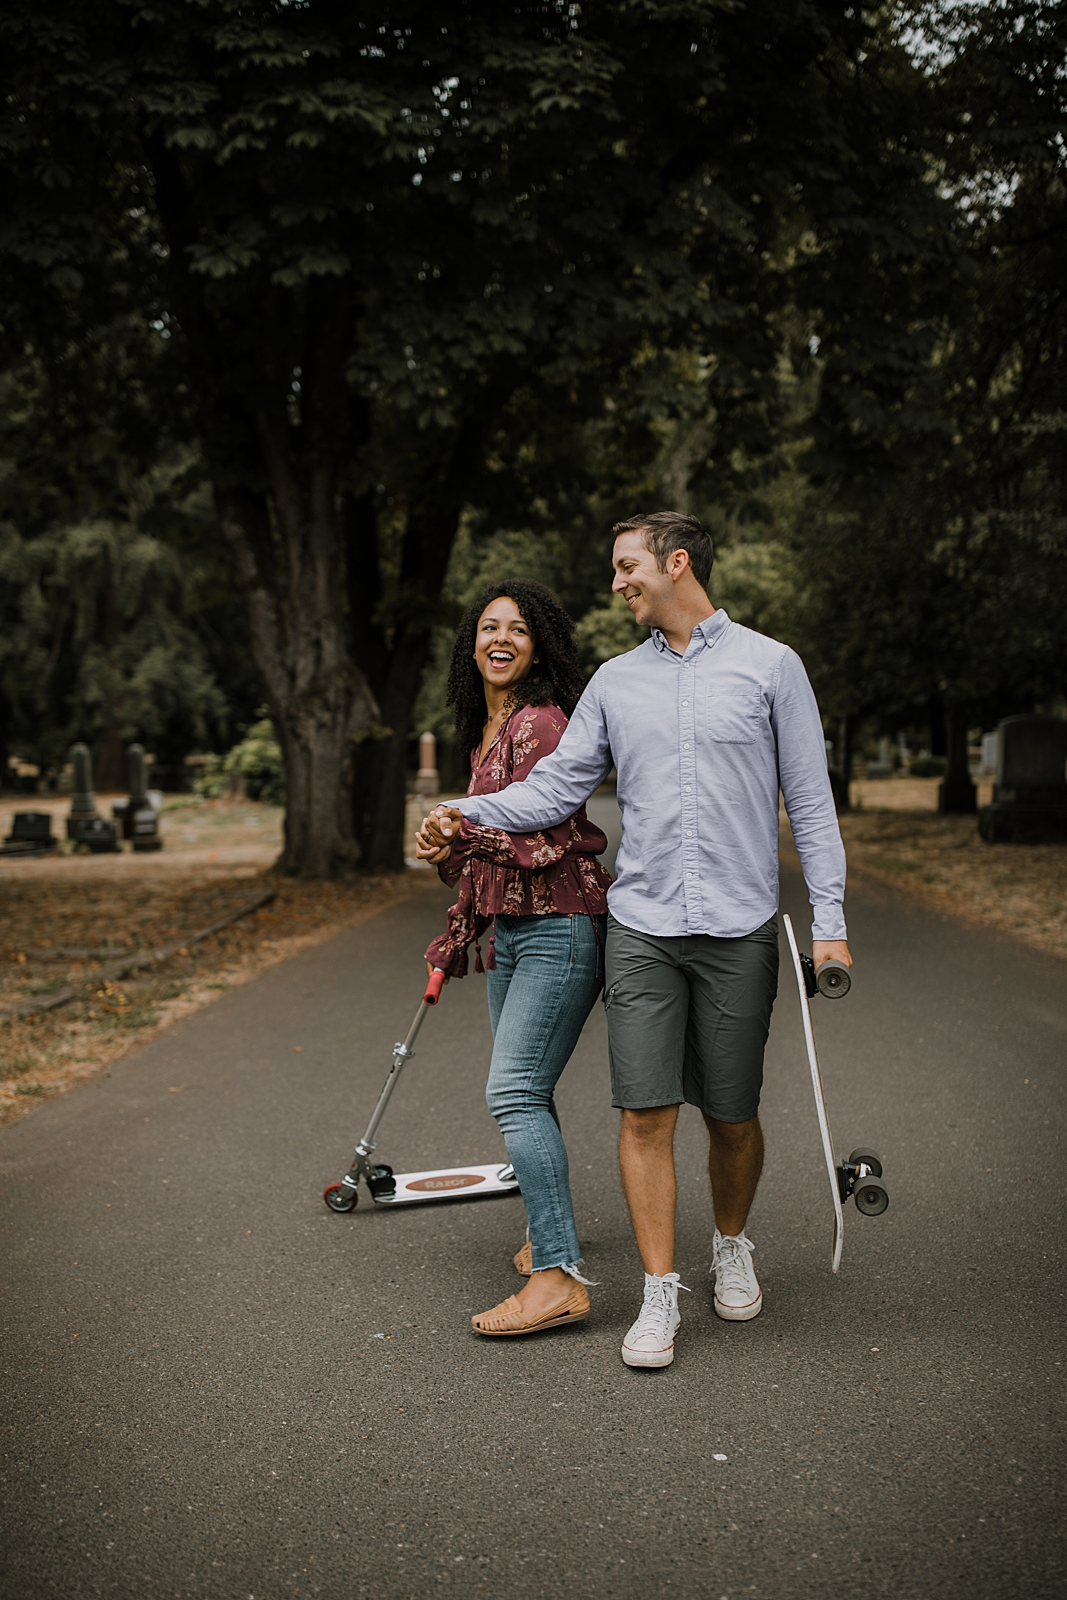 couple riding scooters in portland oregon, portland oregon engagements, portland oregon cemetery walk, riding scooters for your engagement session, downtown portland